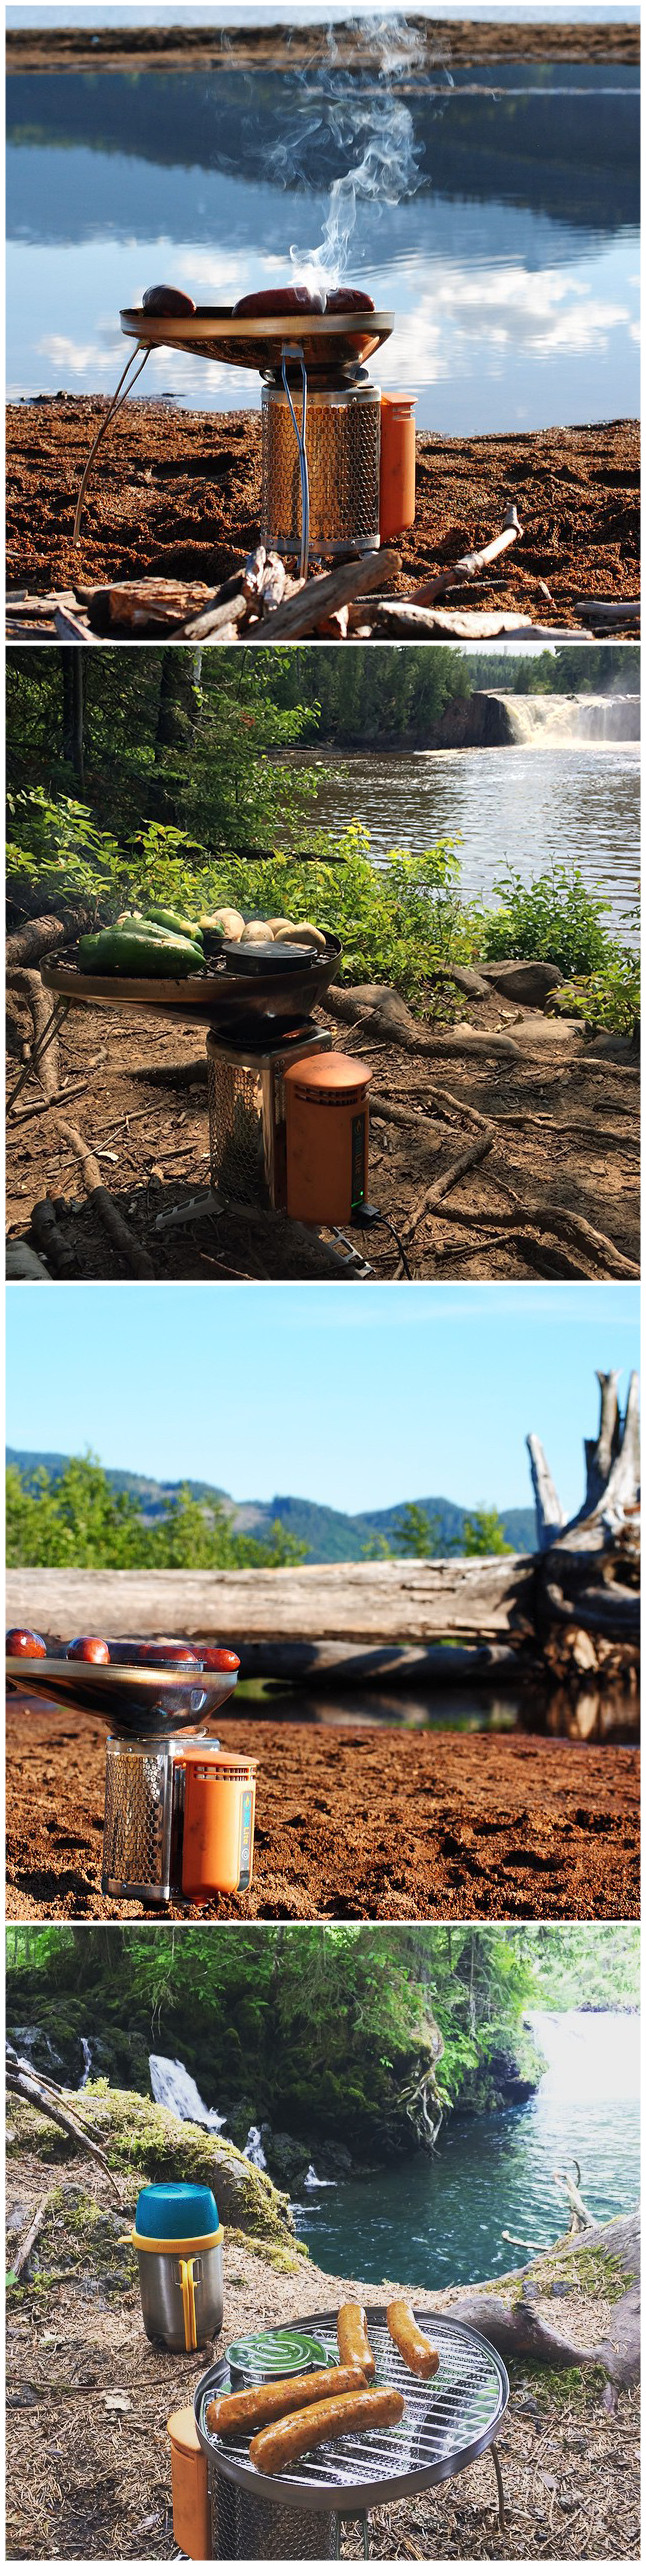 BioLite CampStove Bundle put to good use by super outdoor ...